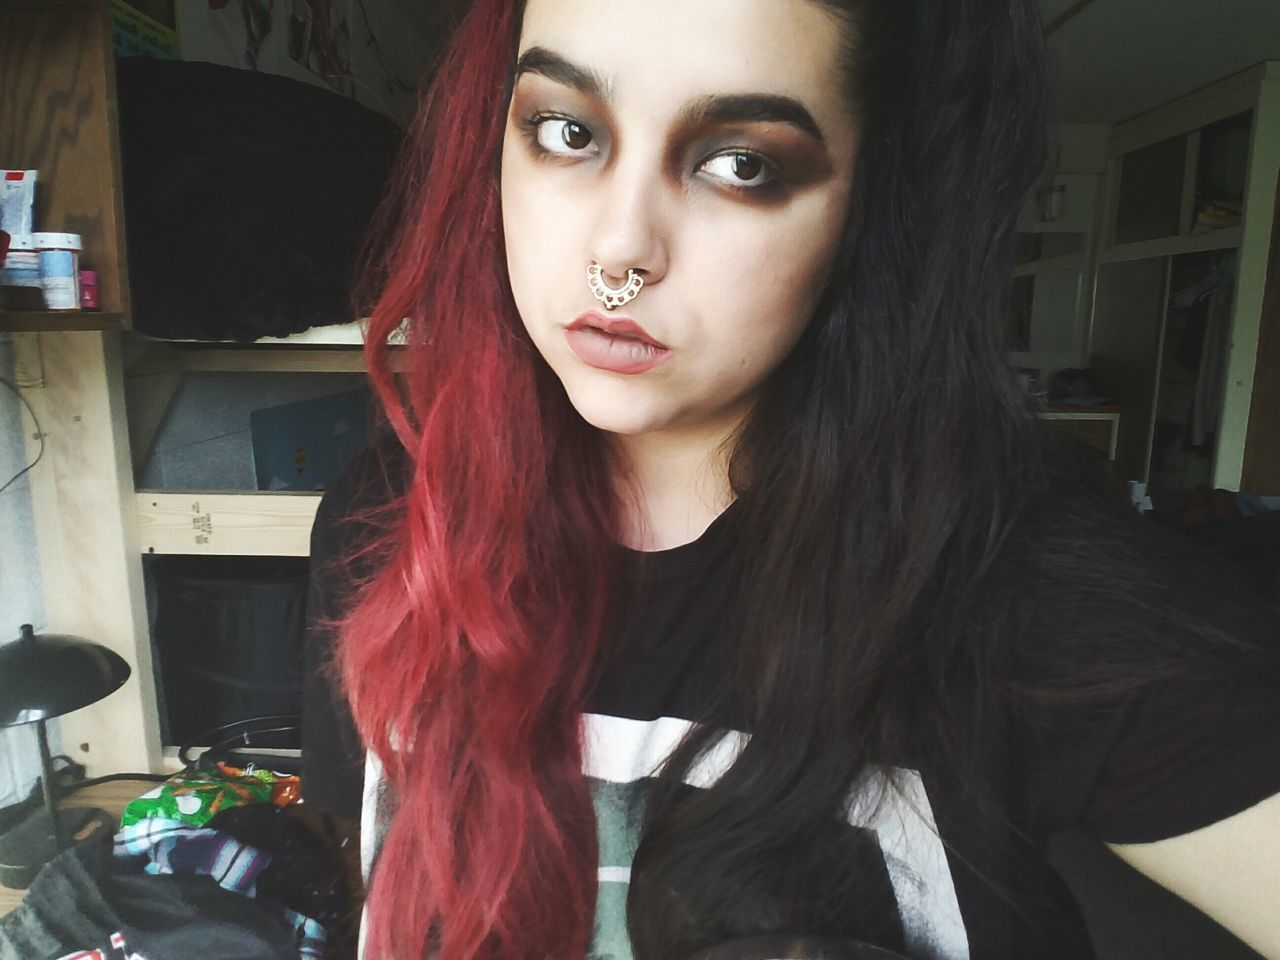 So write it down, I'm not using my lungs anymore. This is the last time, write it down. I won't be your voice anymore. Goth Goth Nu Goth Gothic Darklings Alternative Girls Black And Red Selfie ♥ Underøath Dorm Life Edgy Tattooed Piercings College Half Head